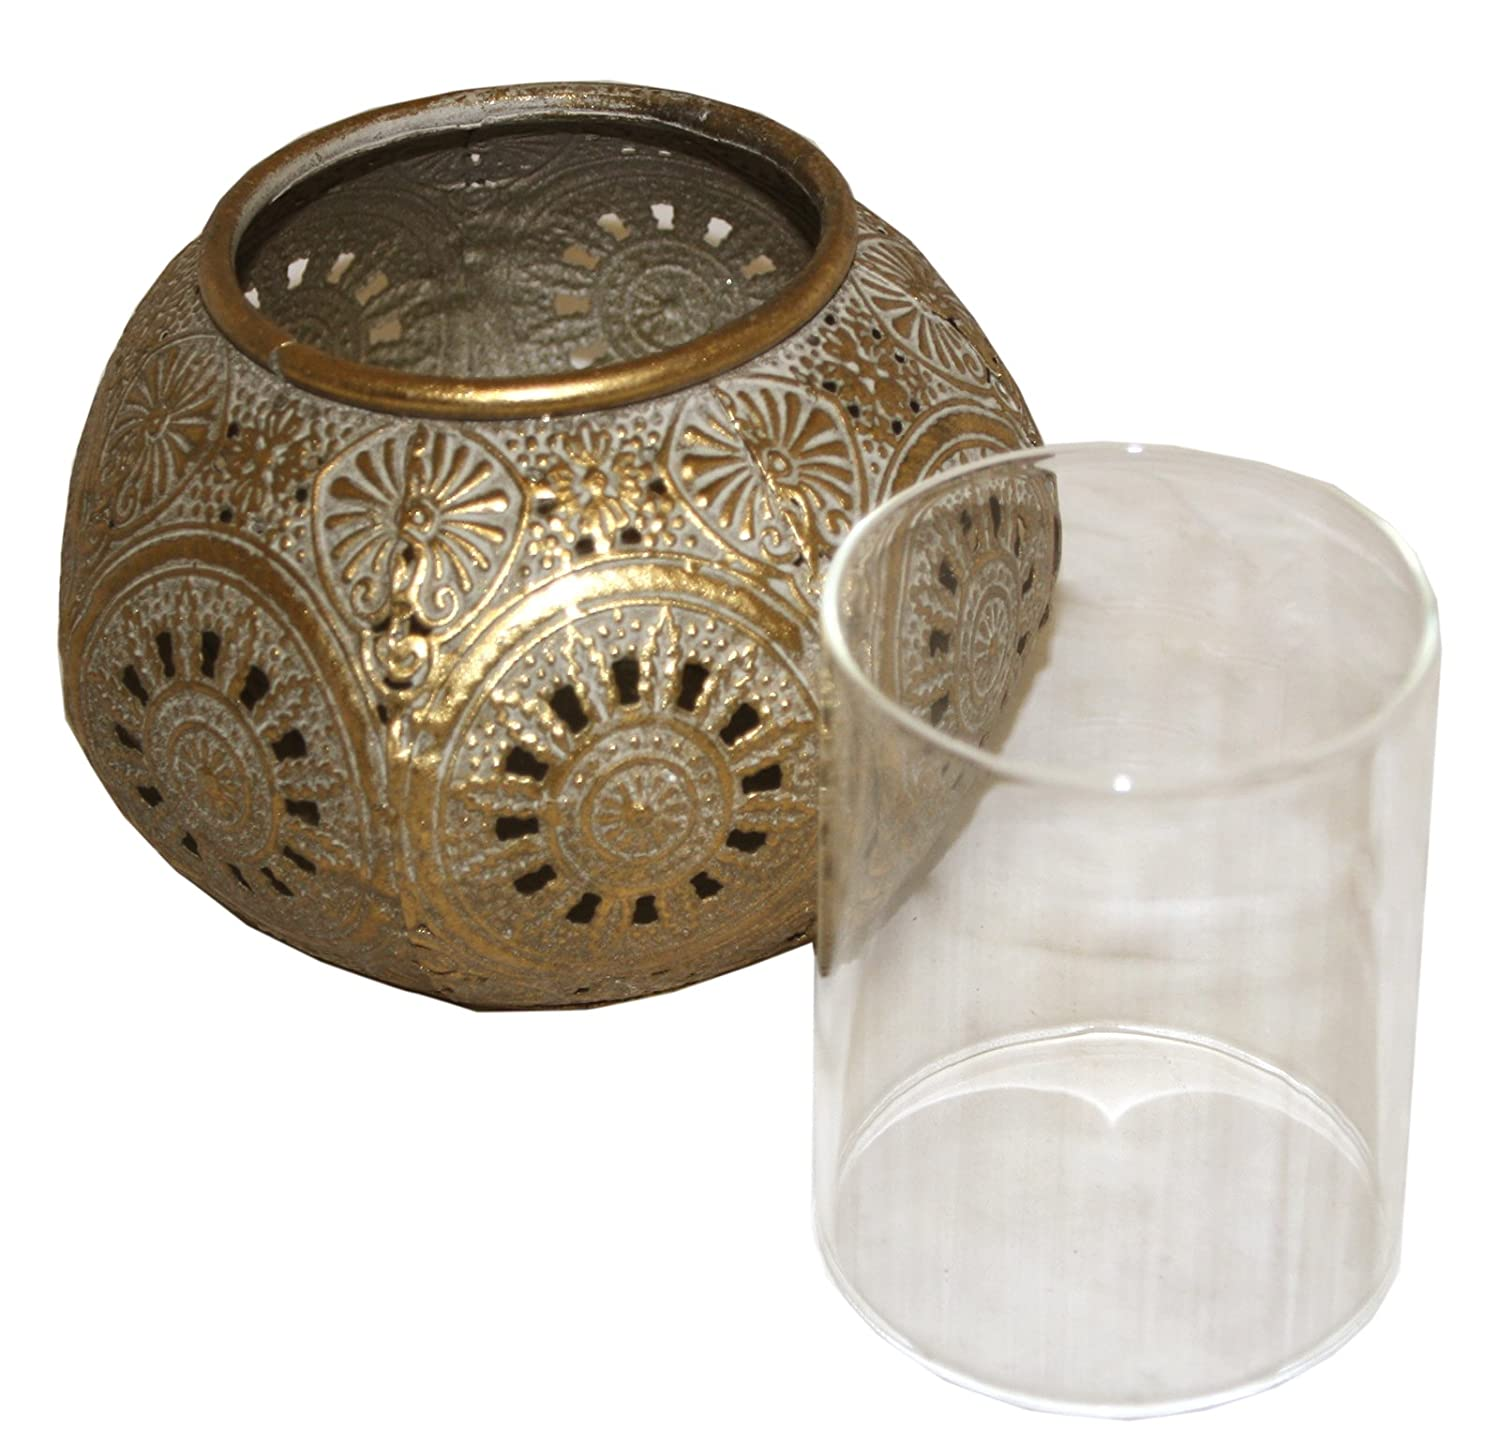 f0bd88d353 marymarygardens Distressed Gold Coloured Metal Moroccan Style Tea Light  Holder with Glass Breeze Guard: Amazon.co.uk: Kitchen & Home